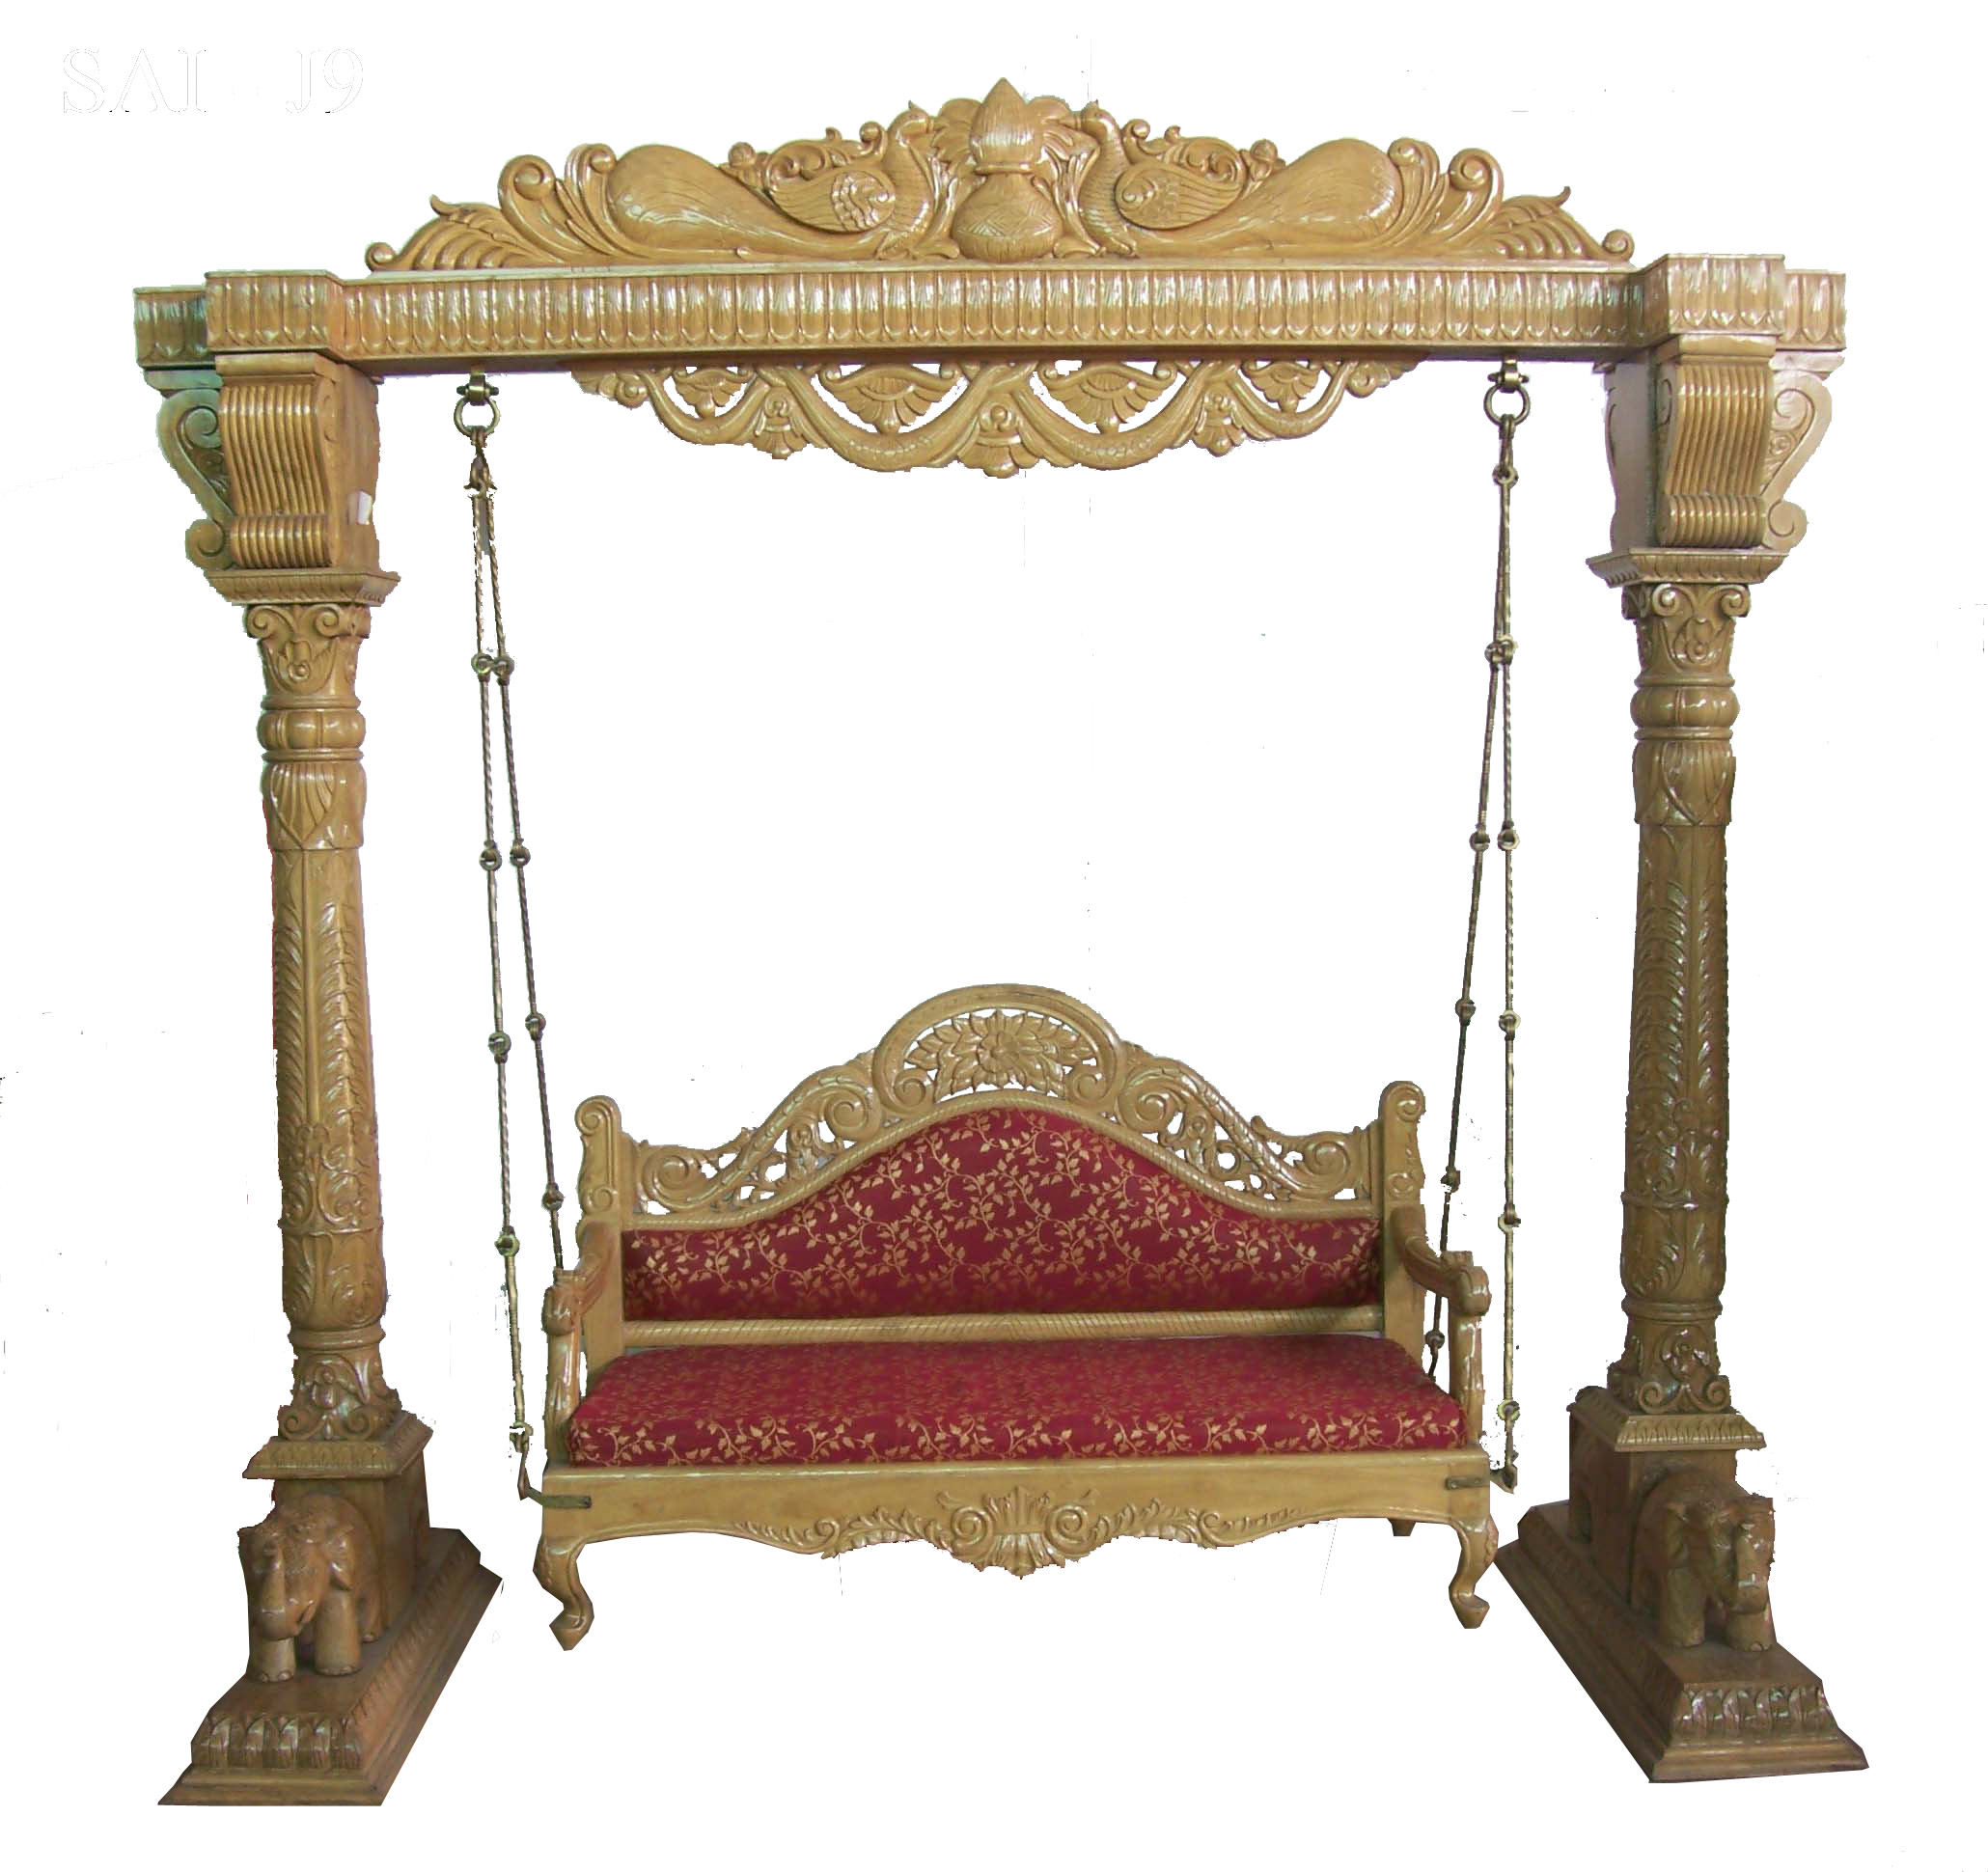 Products buy royal indian swing from dave 39 s export house rajkot india id 221705 - Pictures of furniture ...